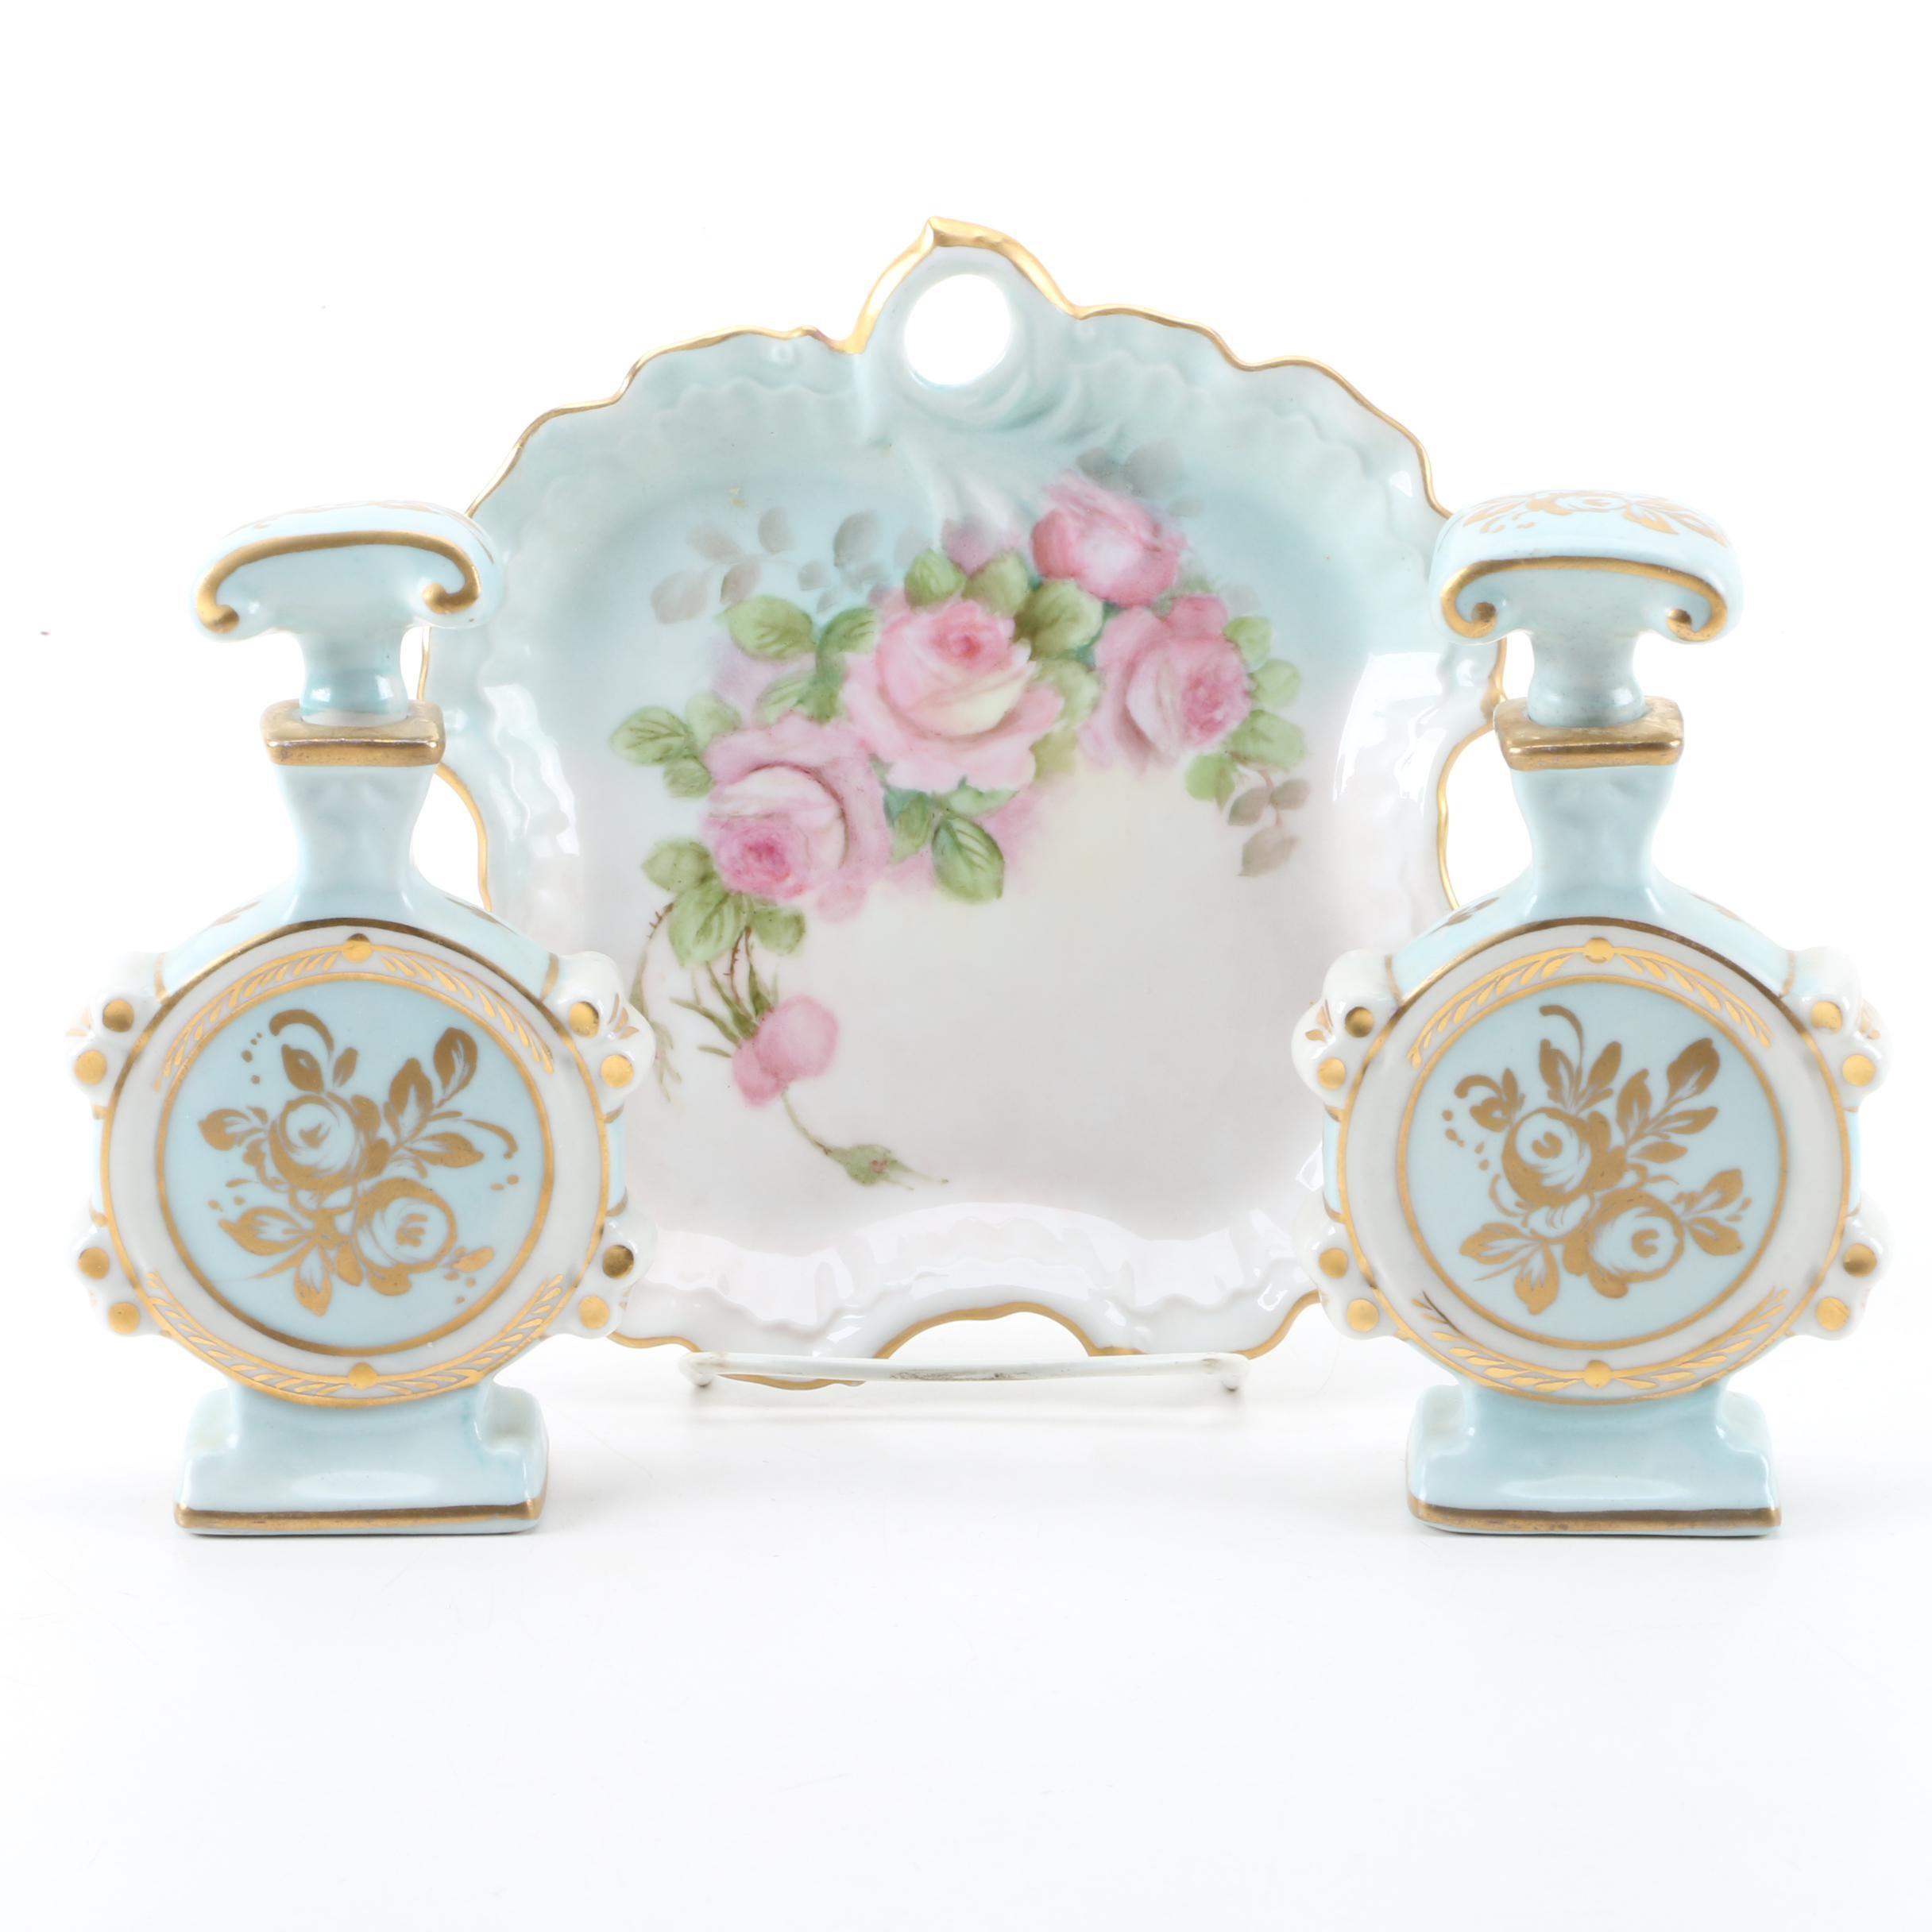 Limoges Porcelain Perfume Bottles and R. Ayers Trinket Dish